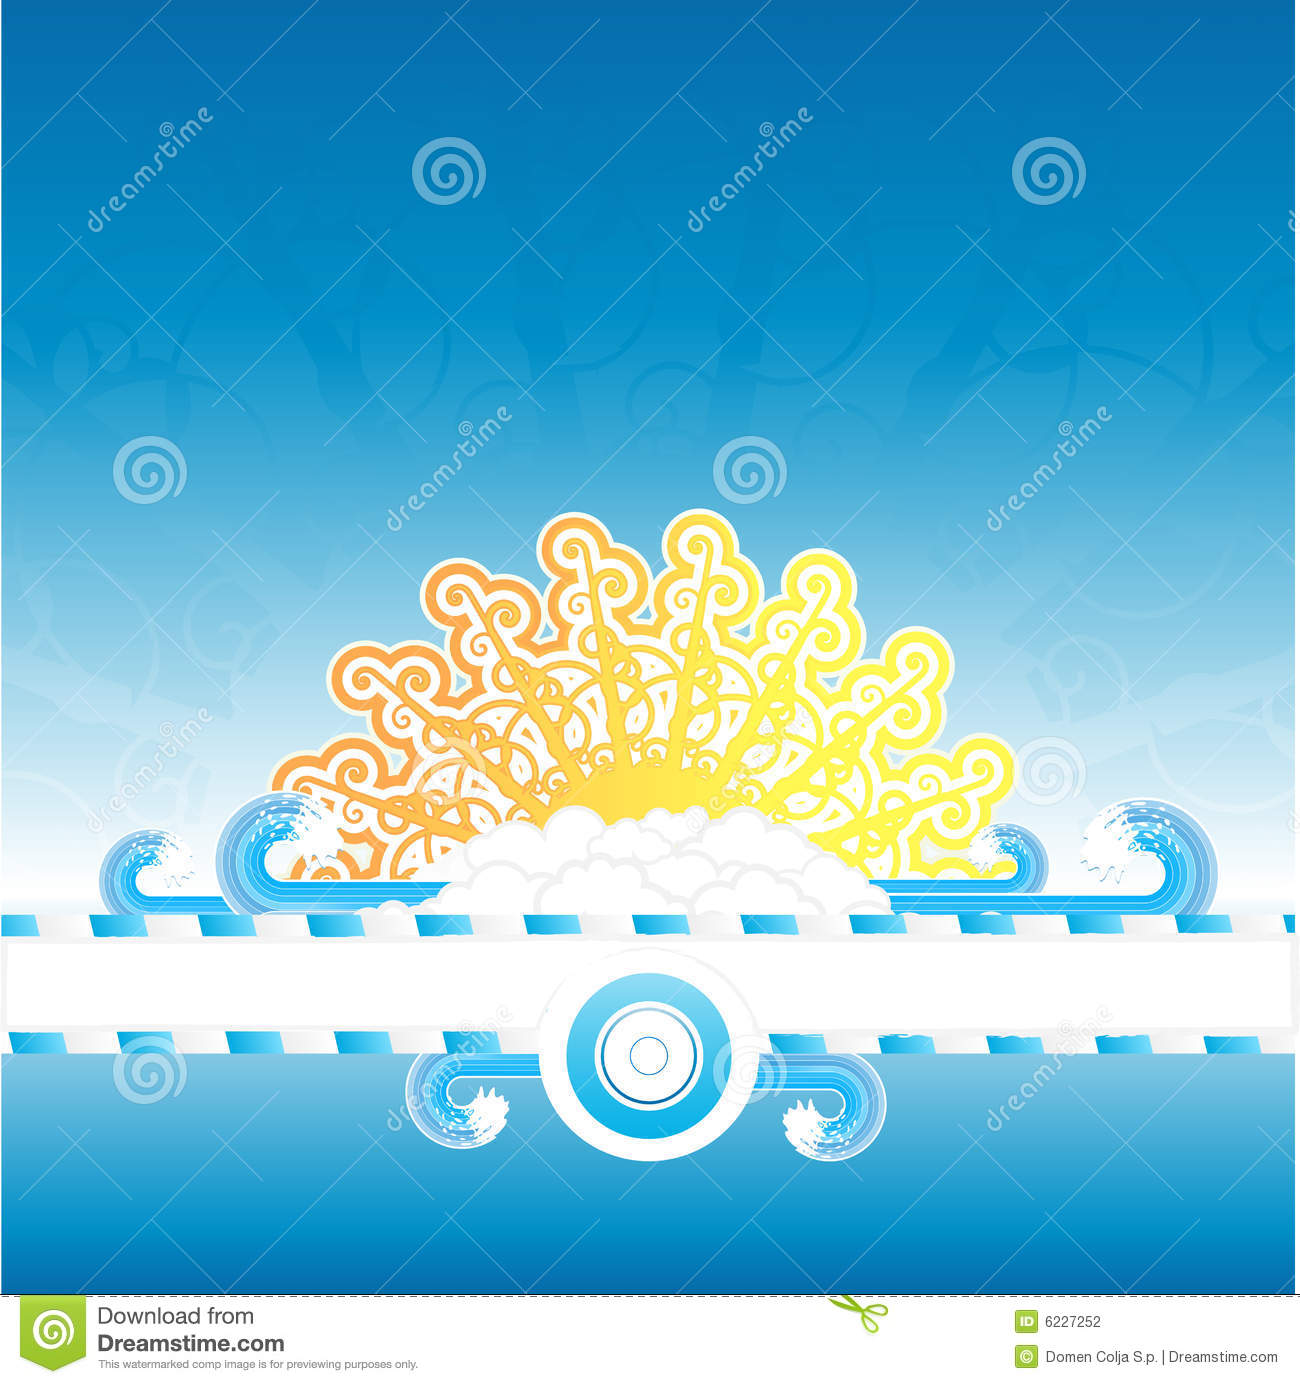 179708 besides Stock Photography Sunny Water Splash Banner Stripe Image6227252 as well 66283864 besides Scroll Banners further G 6lge9btttgpkdrfelafpja0. on stock vector abstract colorful background with custom text